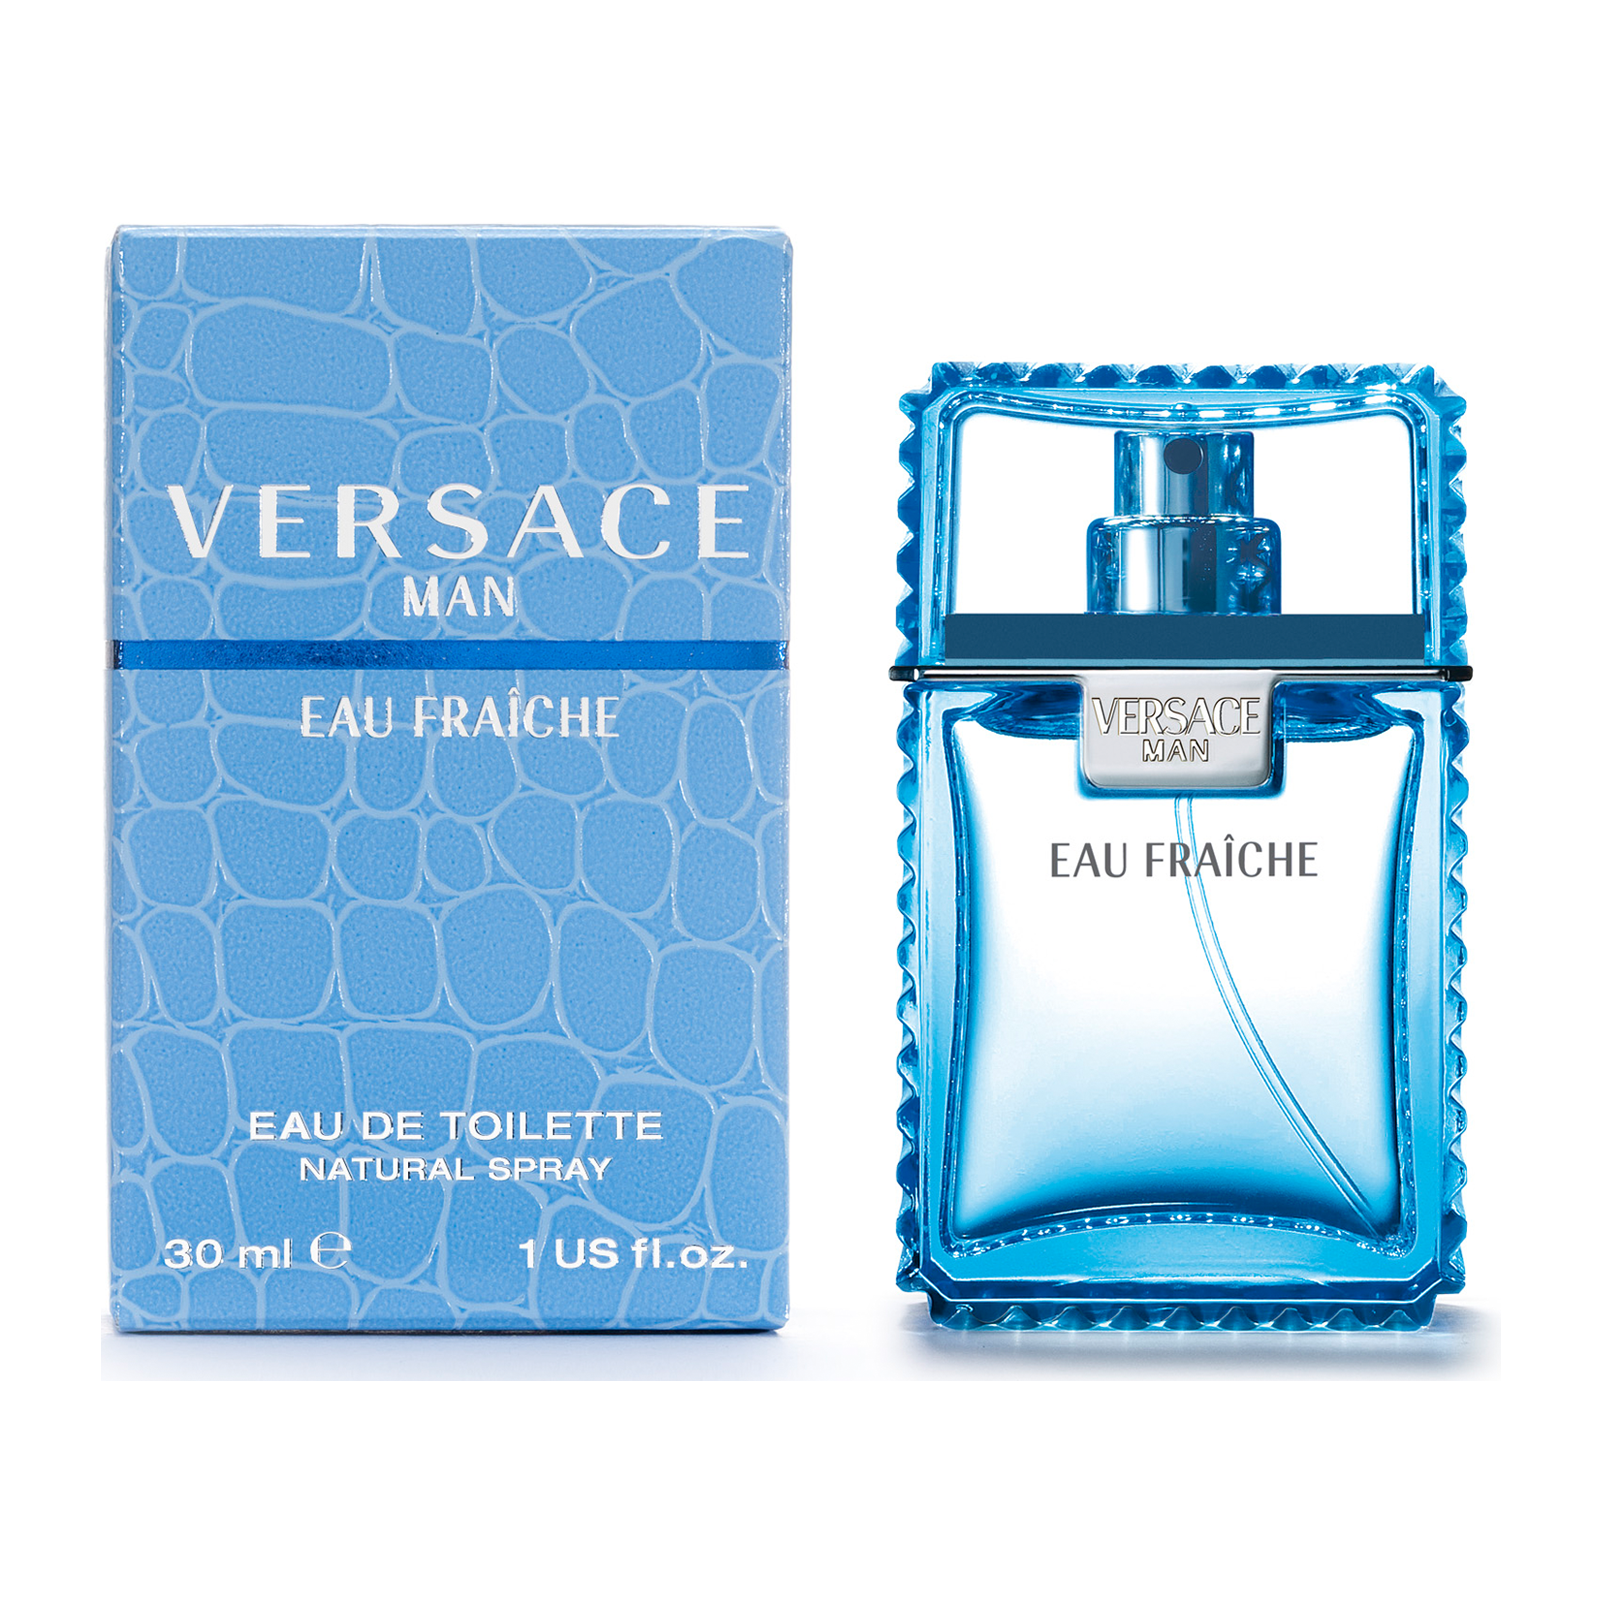 Versace Man Eau Fraiche 30ml EDT Spray